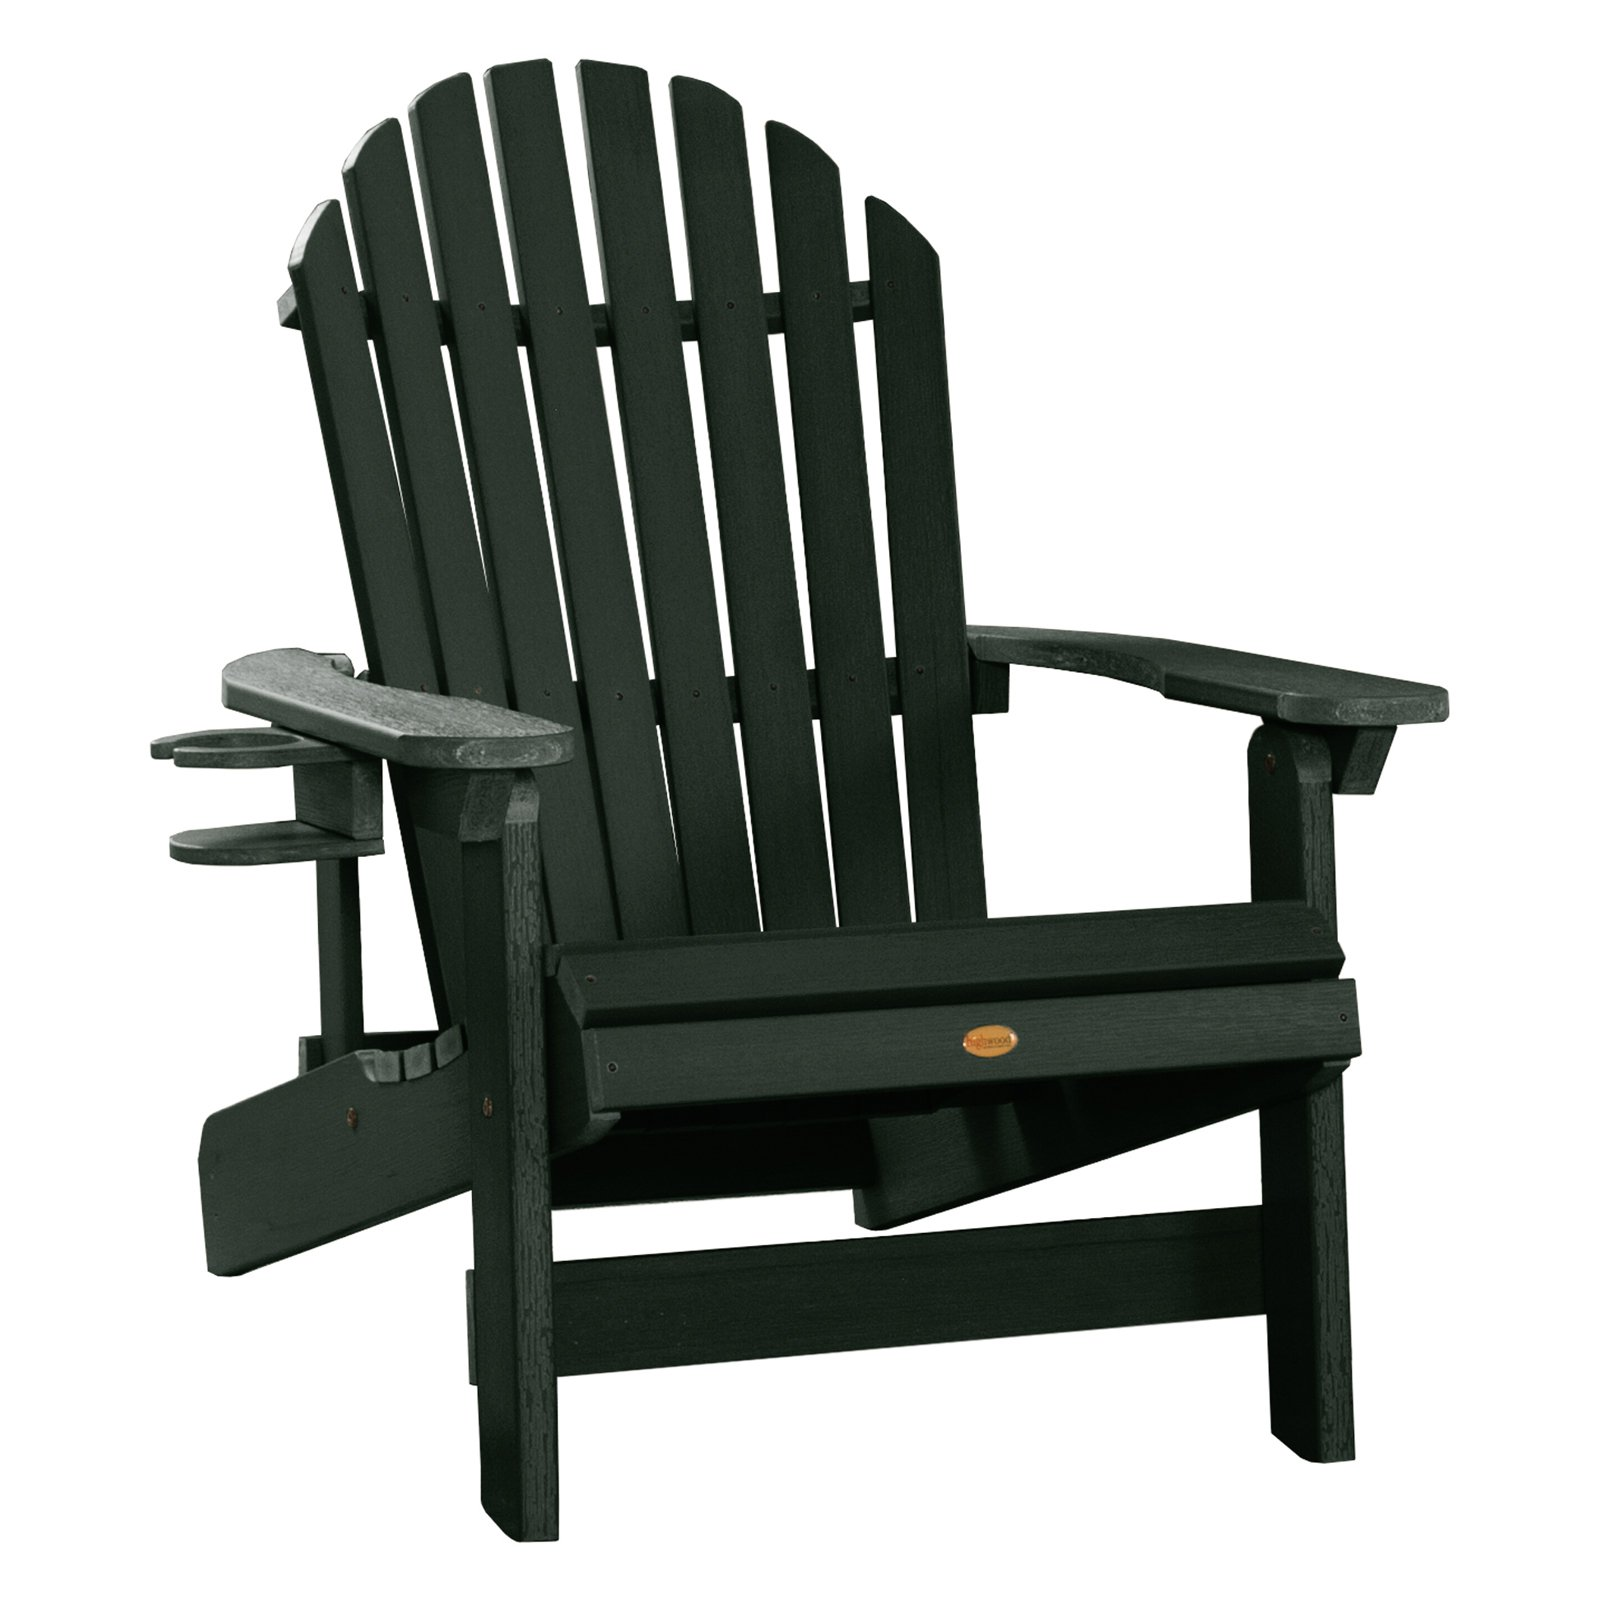 Outdoor Highwood USA King Hamilton Folding and Reclining